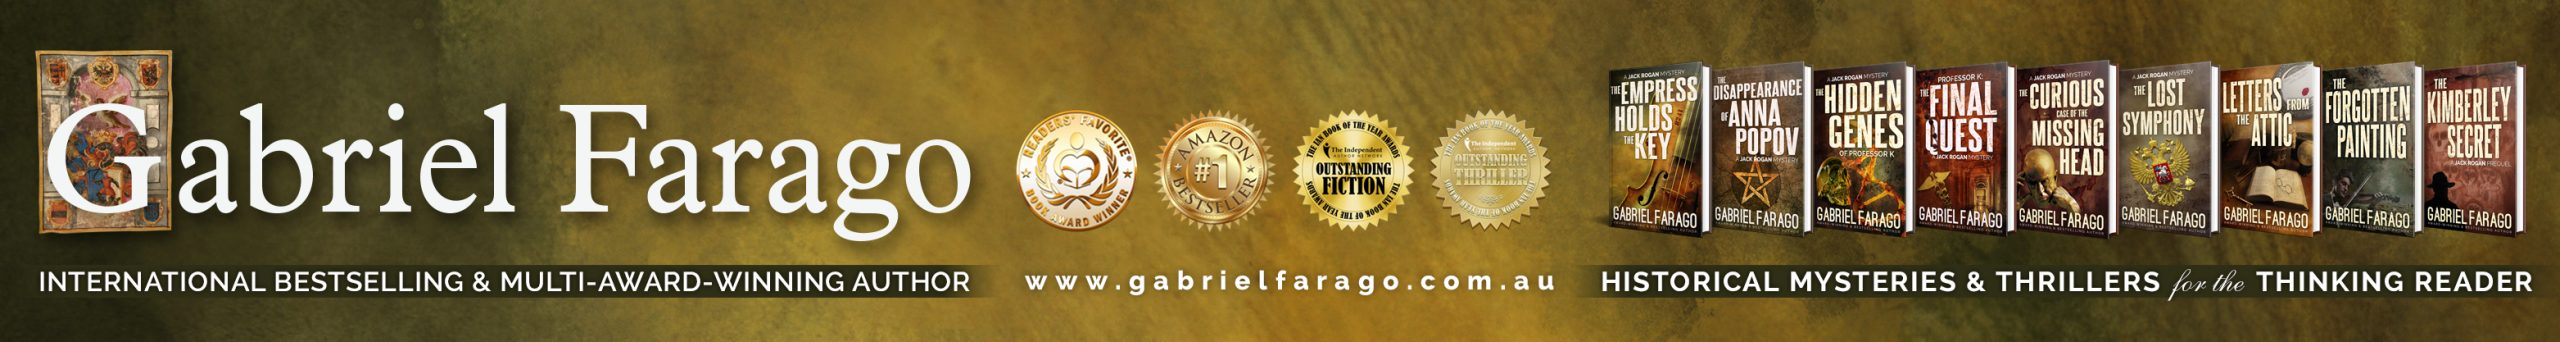 Author Gabriel Farago Official Website